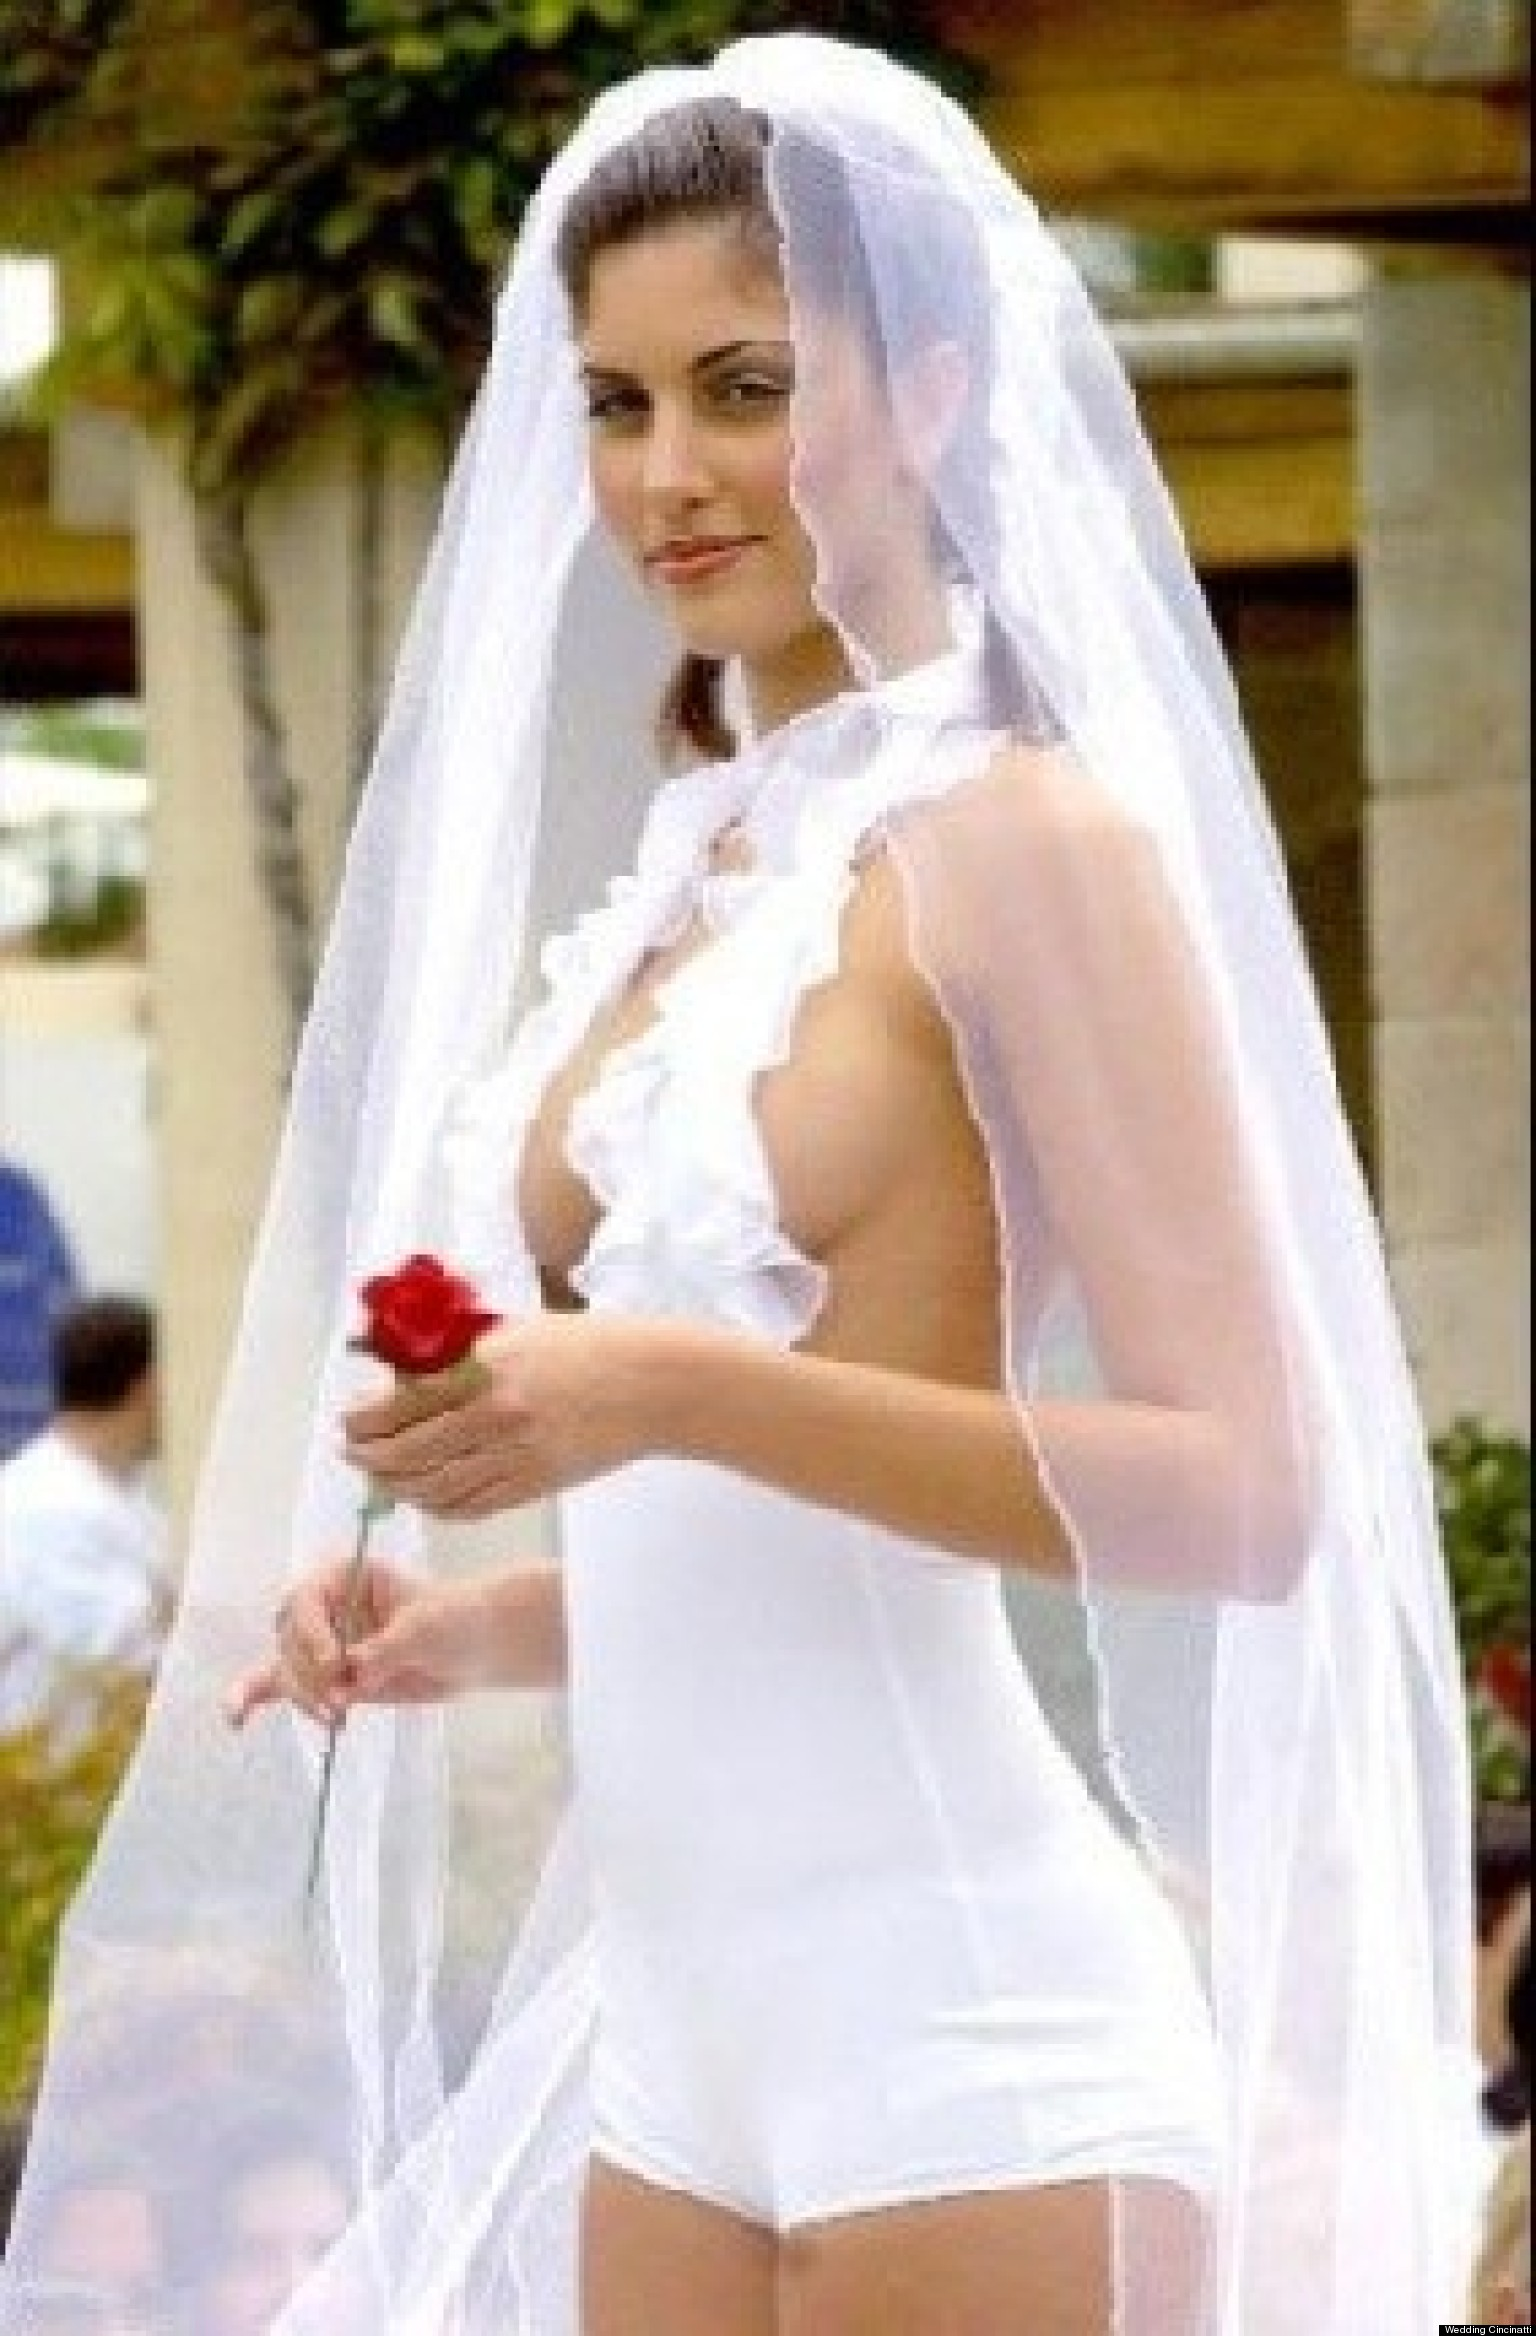 INAPPROPRIATE-WEDDING-DRESS-facebook.jpg